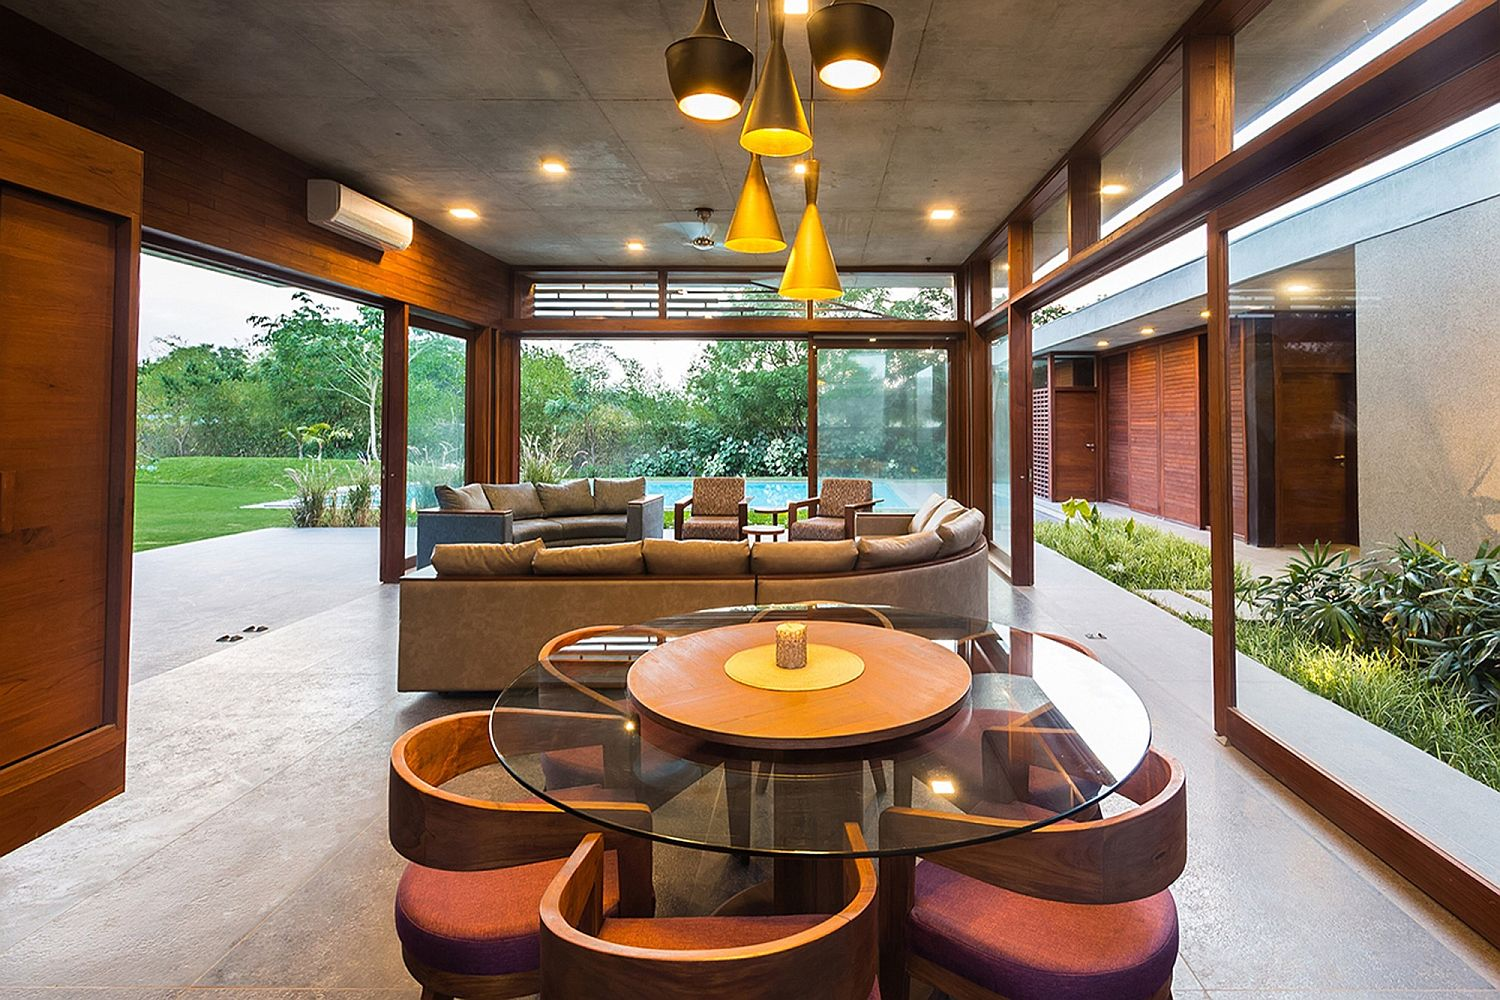 Open pavilion style living room of the Ahmedabad retreat